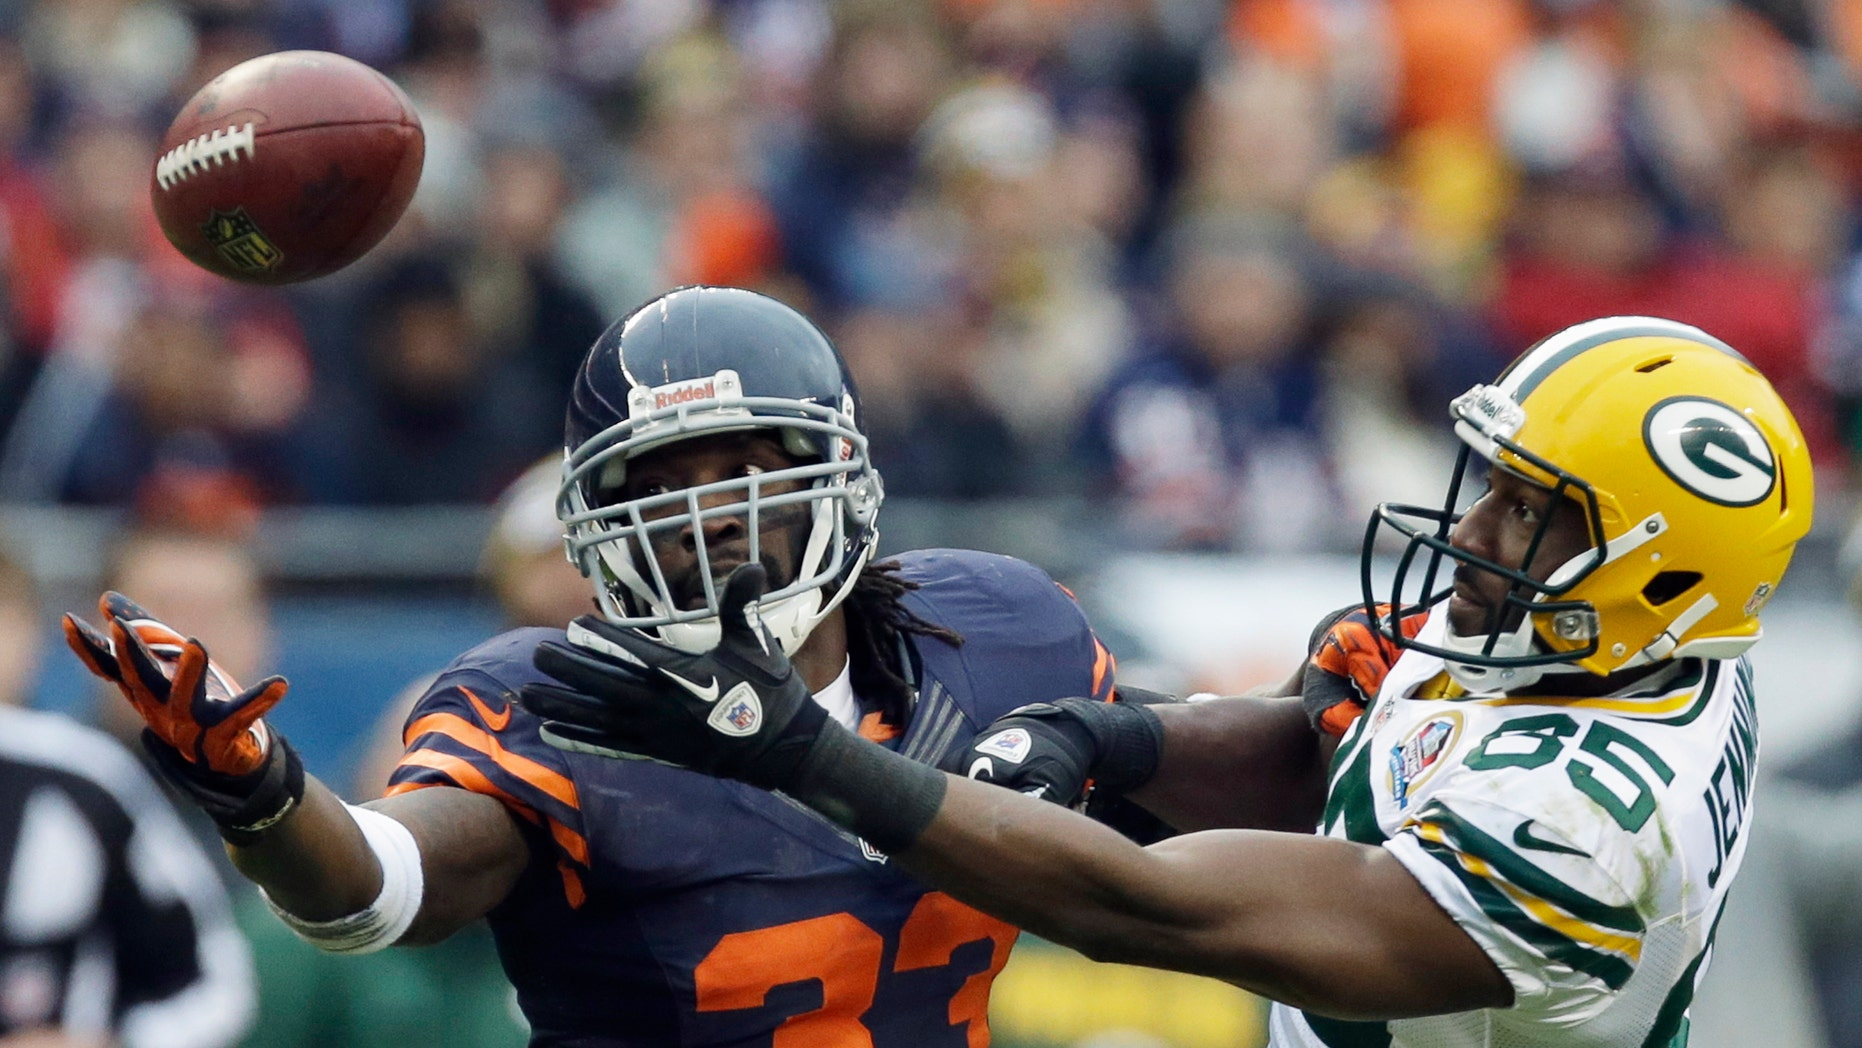 Chicago Bears cornerback Charles Tillman (33) breaks up a pass intended for Green Bay Packers wide receiver Greg Jennings (85) in the second half of an NFL football game in Chicago, Sunday, Dec. 16, 2012. The Packers won 21-13 to clinch the NFC North division title. (AP Photo/Nam Y. Huh)